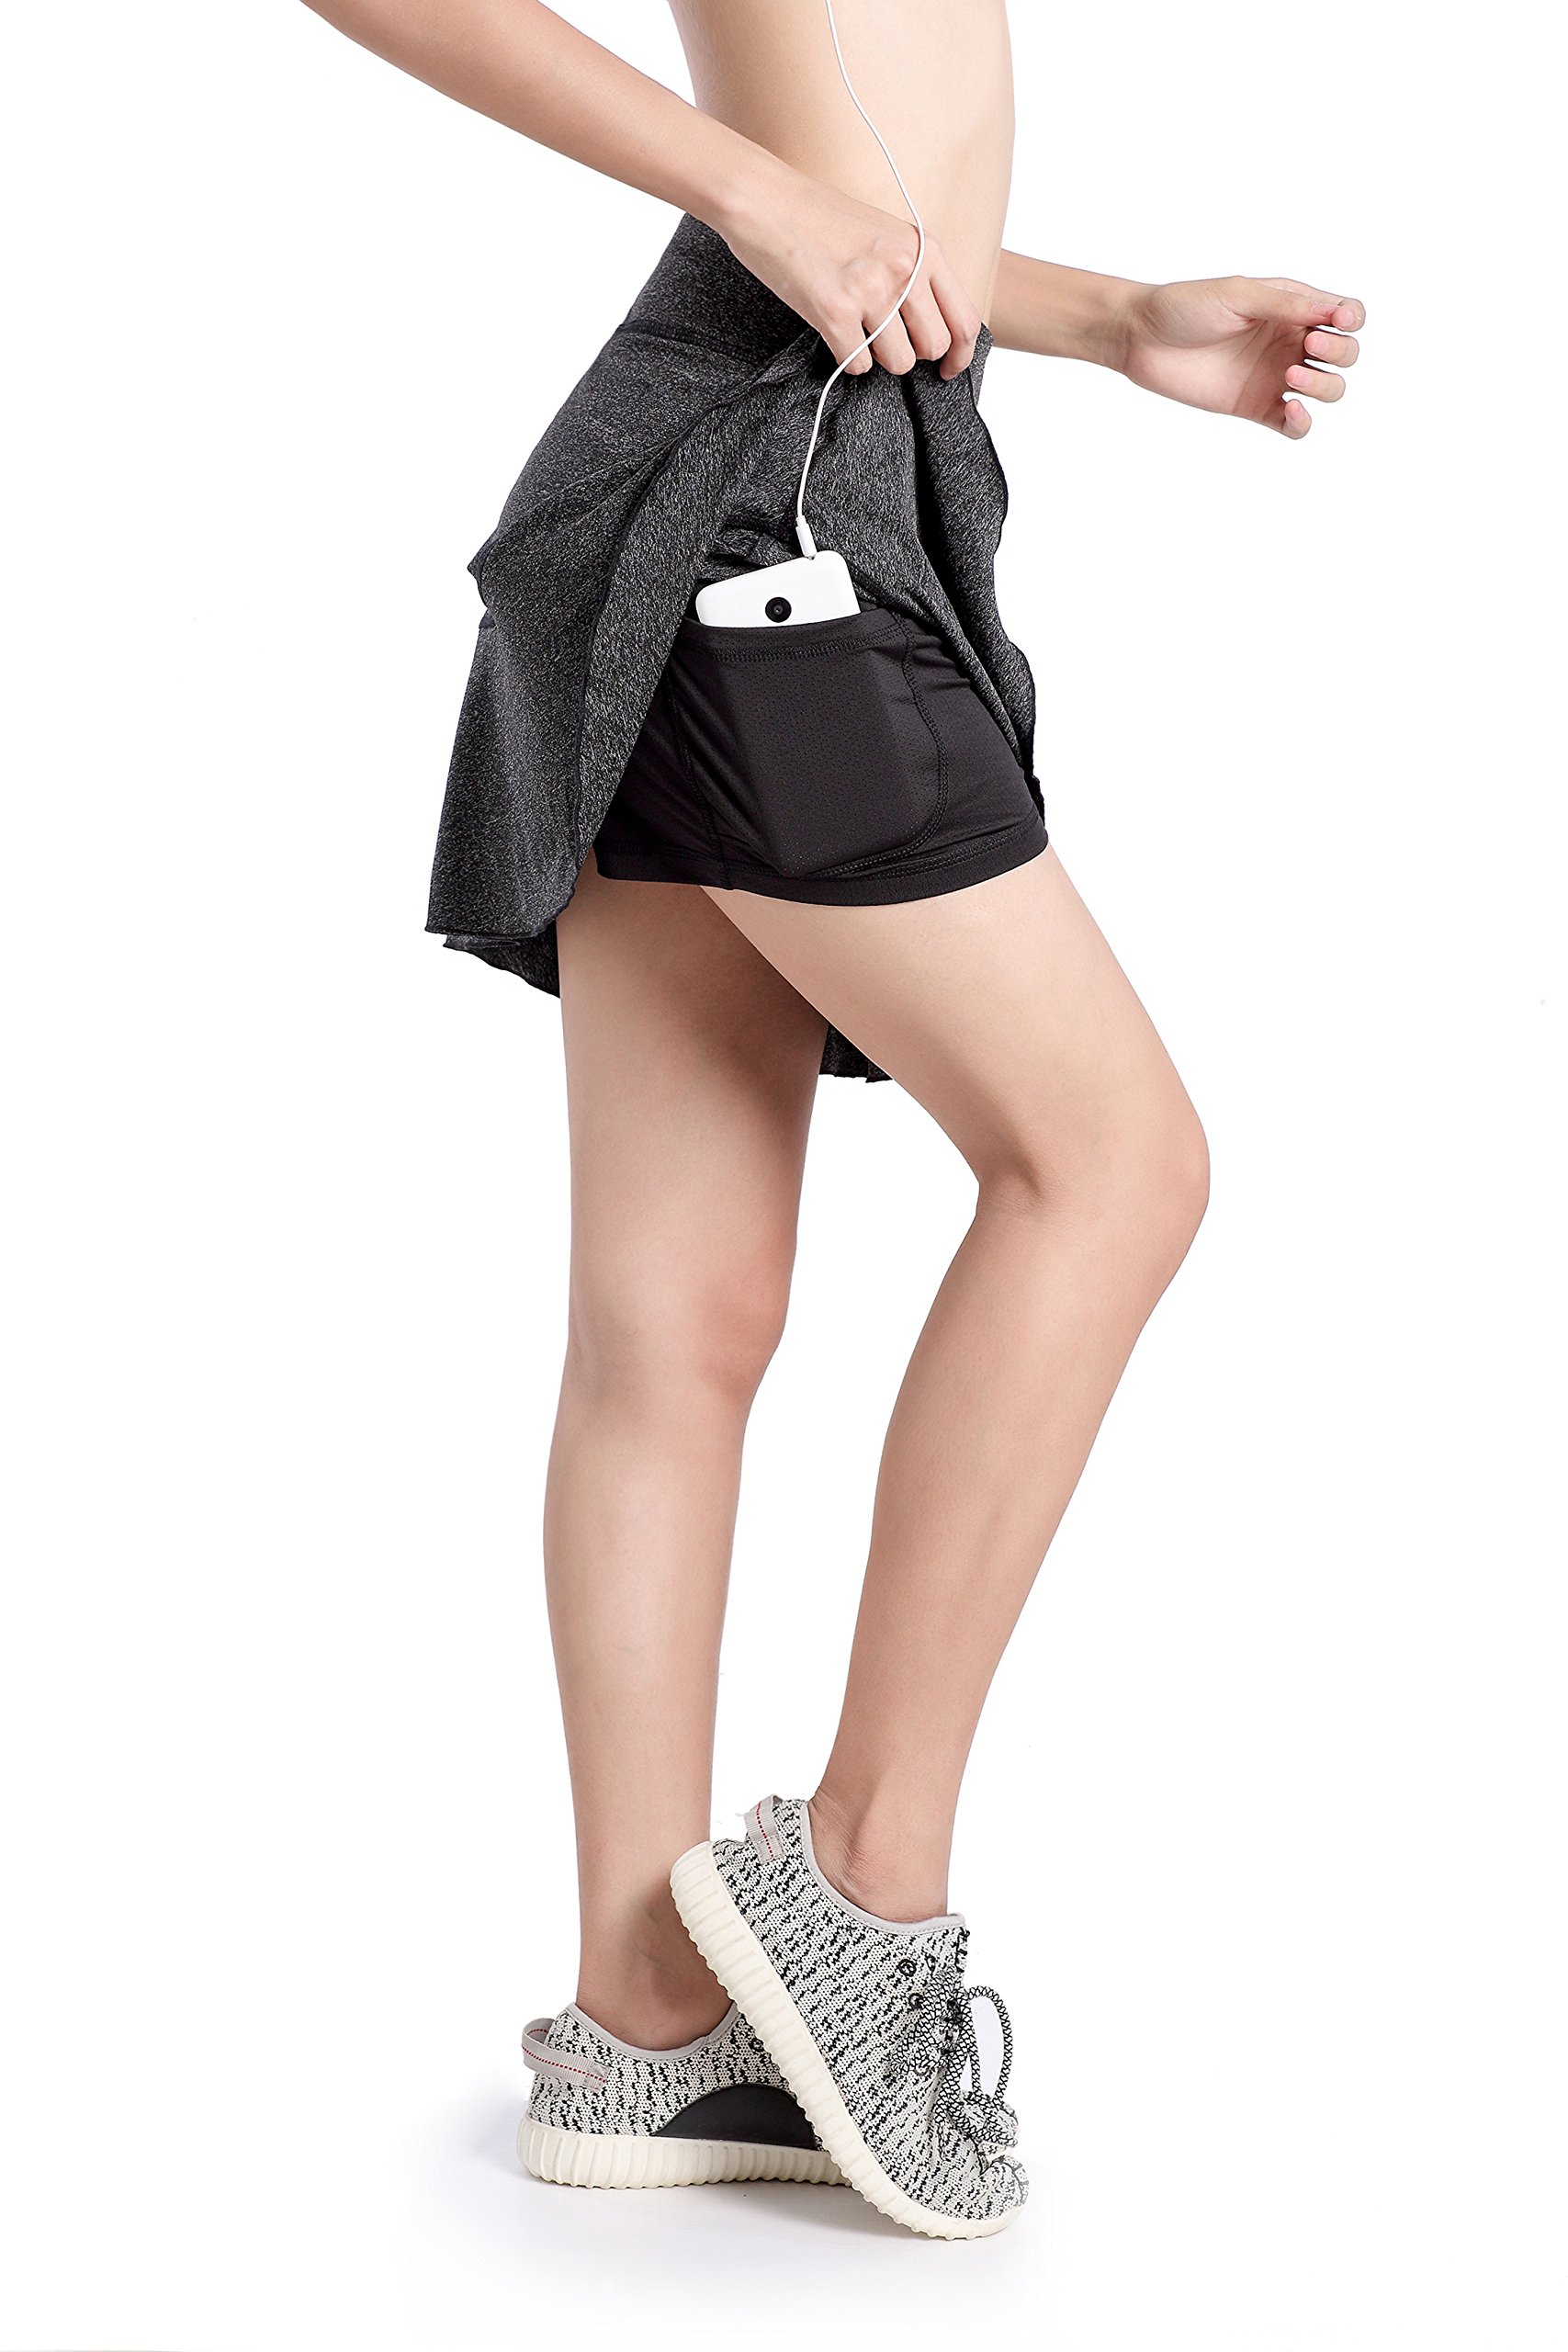 Annjoli Womens Running Golf Skorts Tennis Workout Skirt,for Athletic,Active Clothes (L, Gray .)